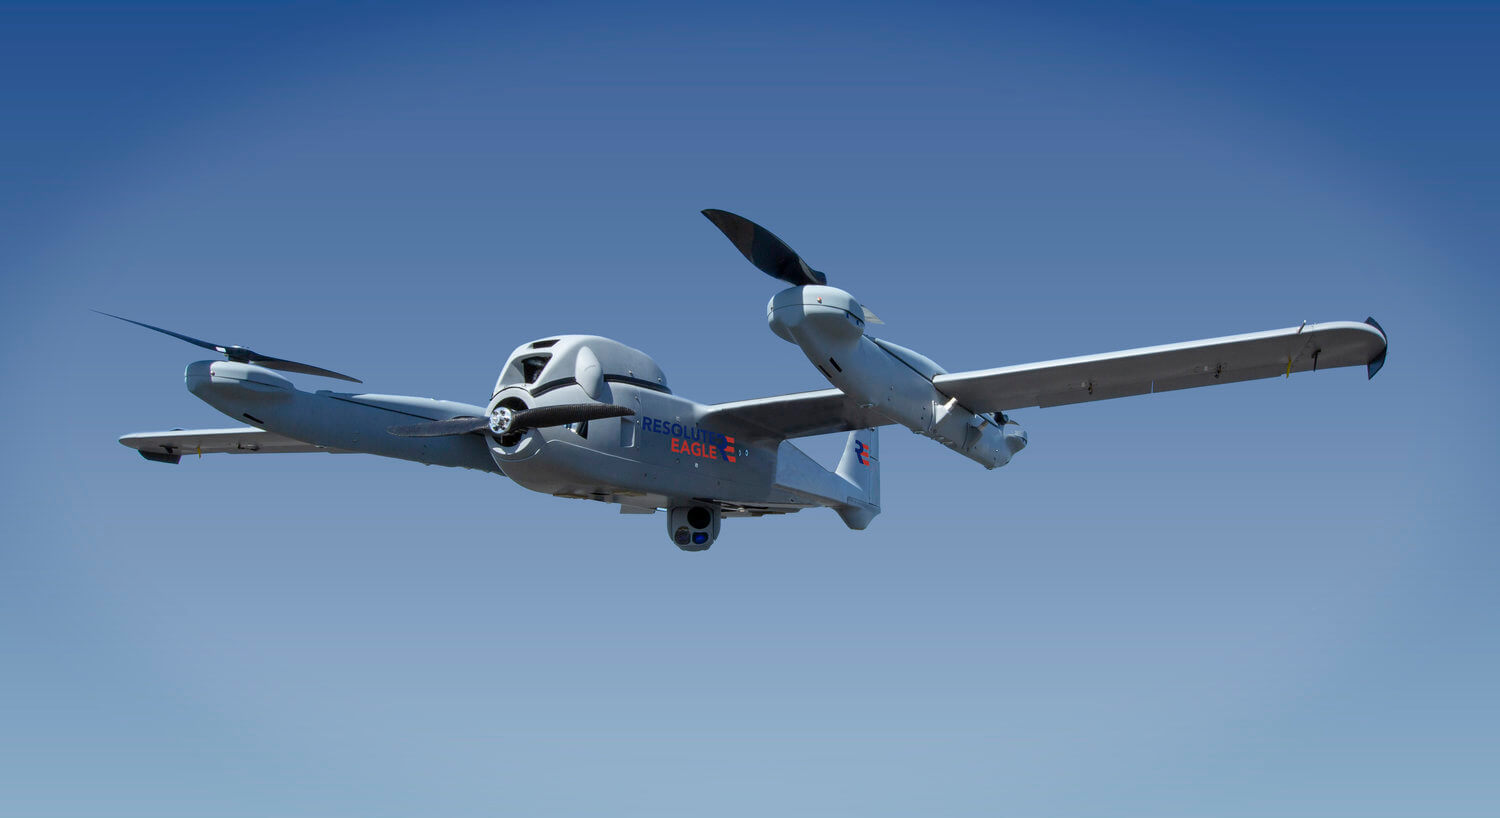 Pae Isr Partnering With Nasa To Conduct Large Drone Demo